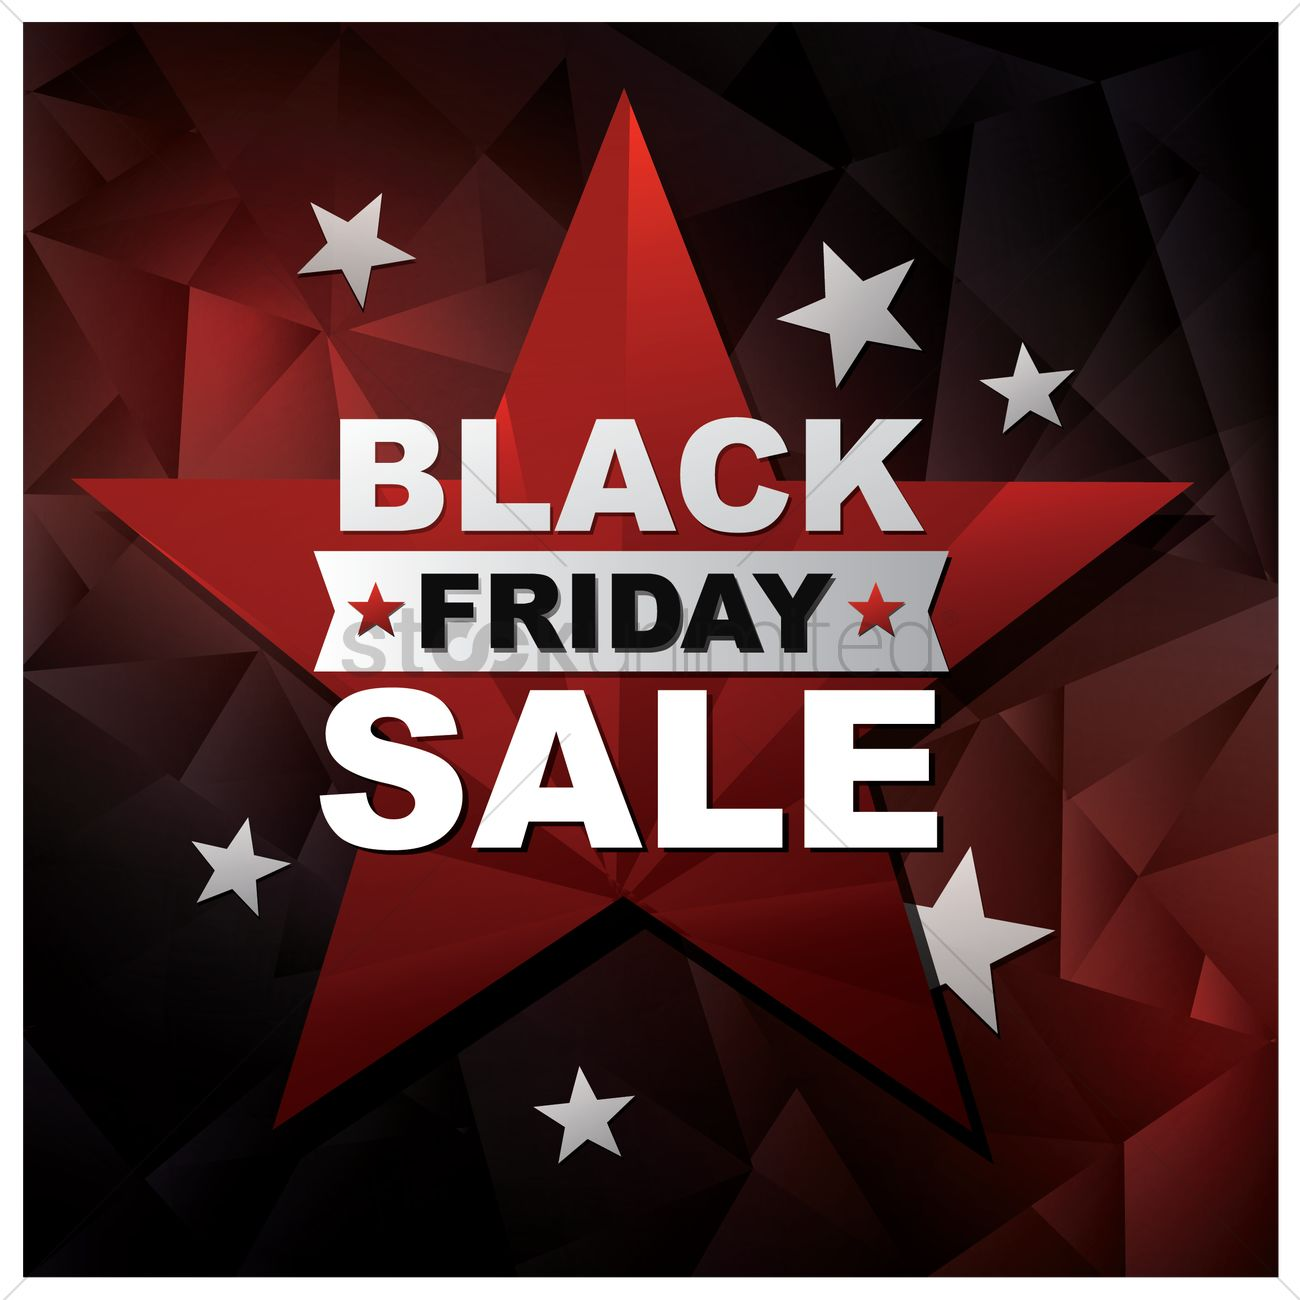 Black friday sale wallpaper Vector Image   1583926 StockUnlimited 1300x1300